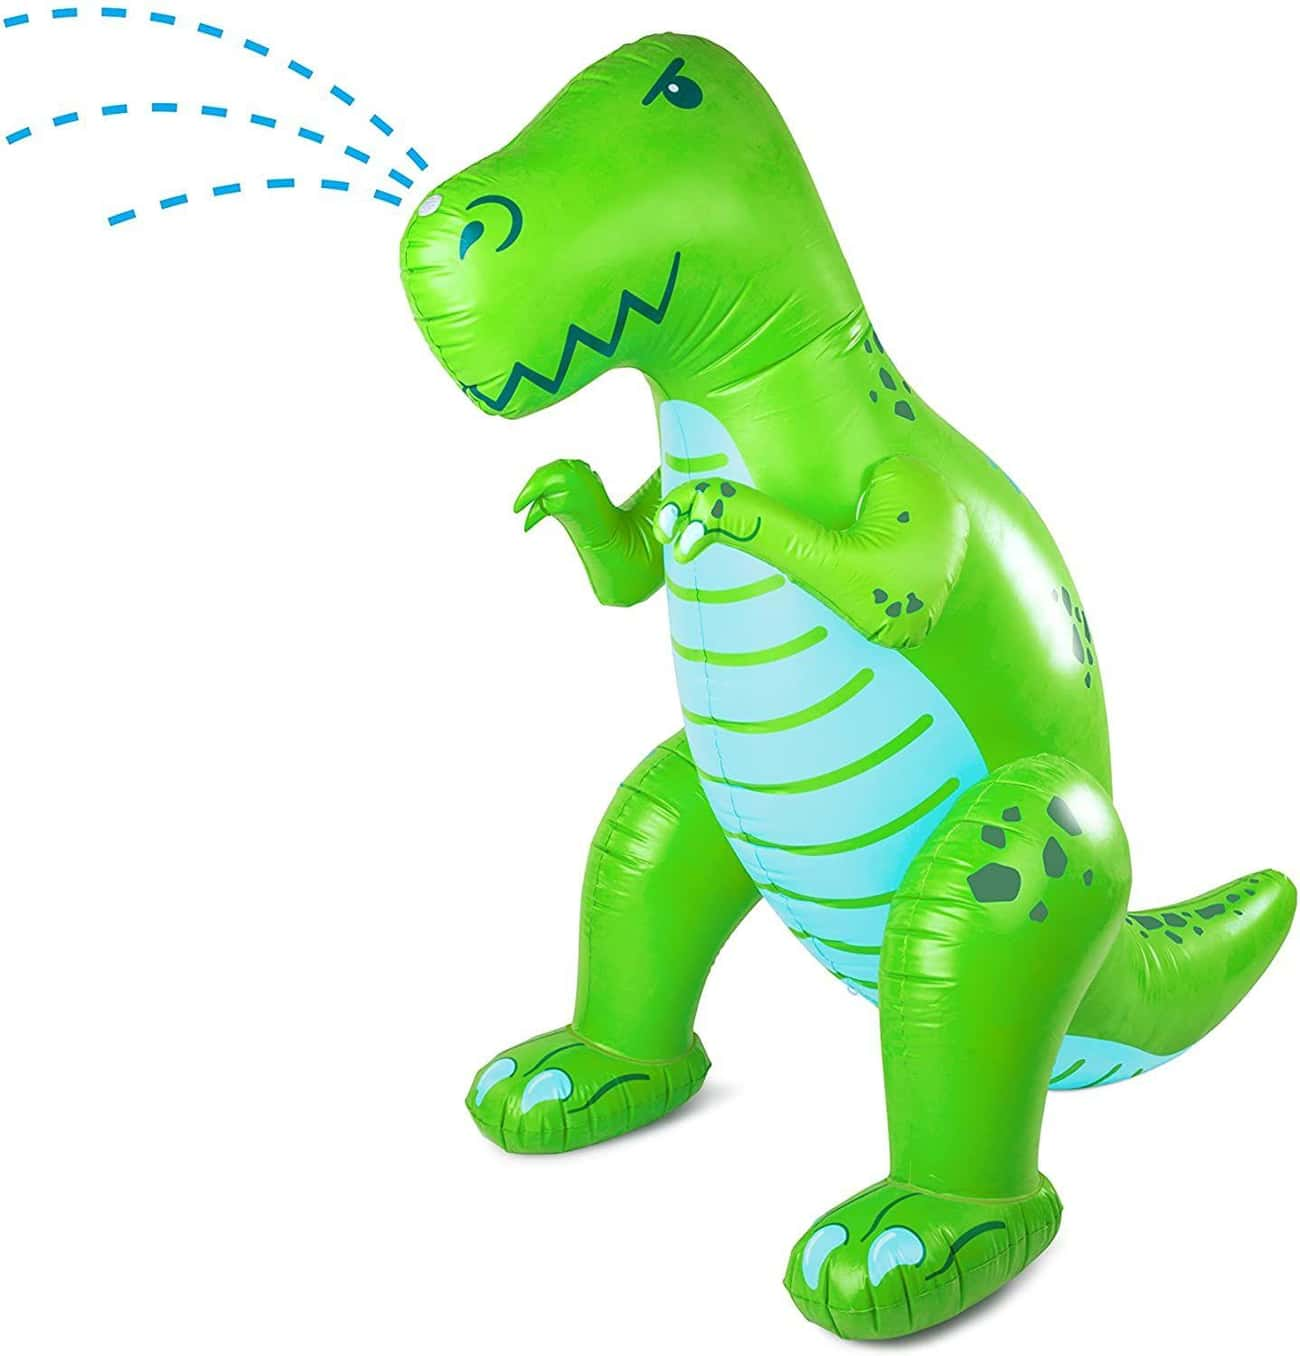 Ginormous Inflatable Dinosaur  is listed (or ranked) 1 on the list 13 Backyard Water Toys That Are Sure To Keep The Kiddos Busy (For A Few Mins, At Least)